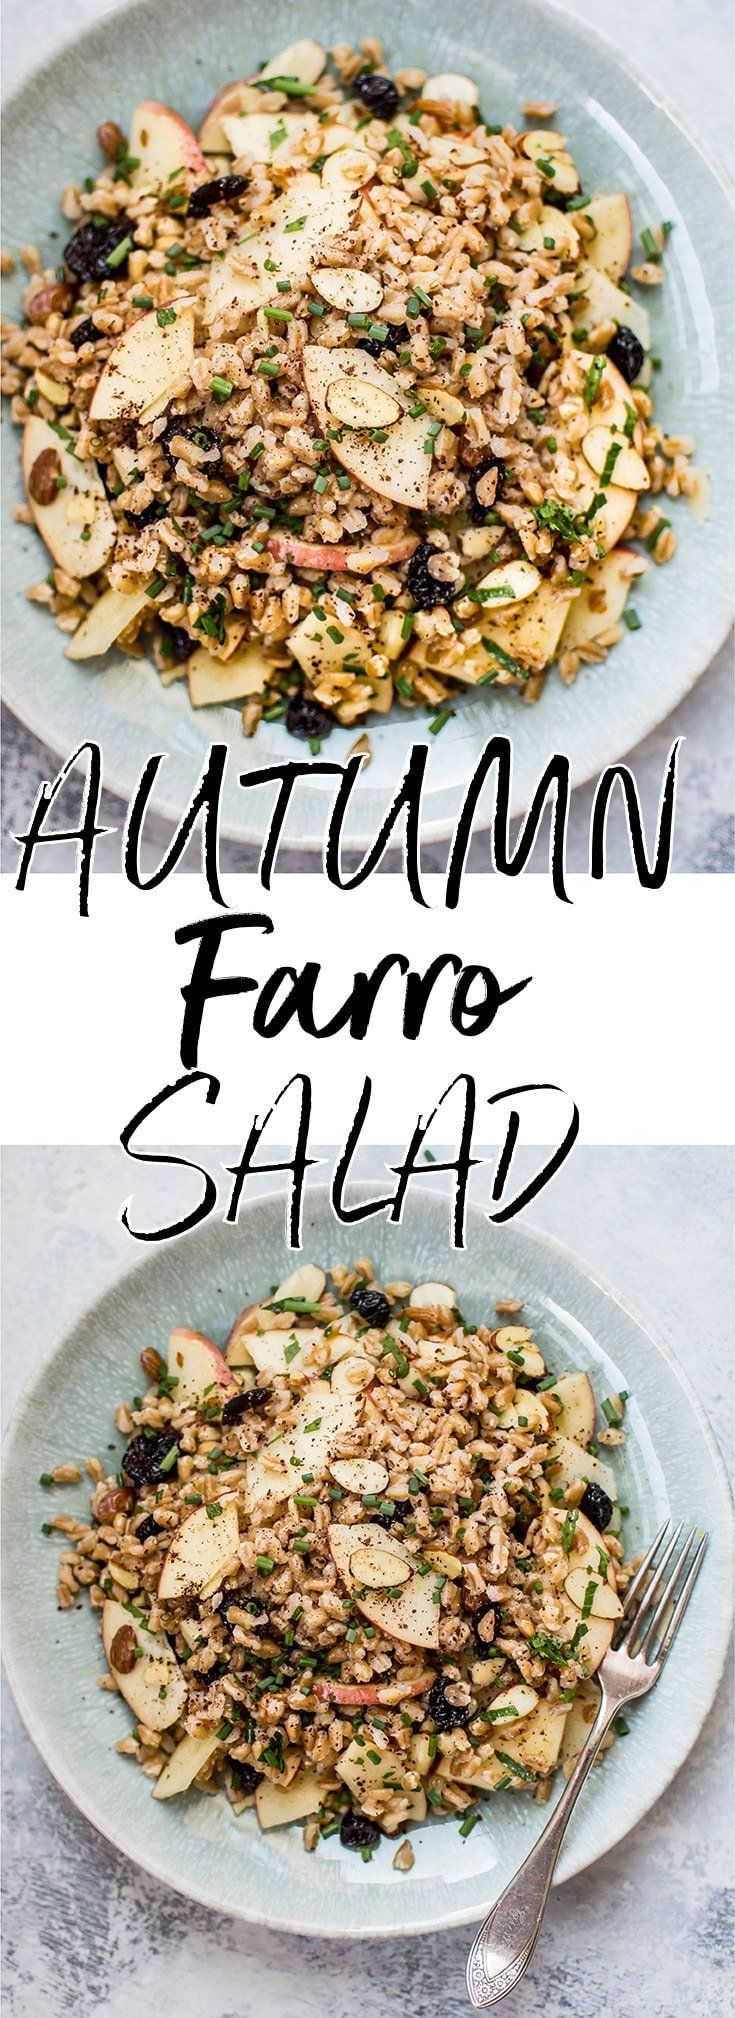 This healthy vegan farro salad is packed with dried cranberries, sliced almonds, honeycrisp apple slices, chives, and a lemon vinaigrette. It makes a wonderful light lunch or side dish. #farrosalad #veganrecipe